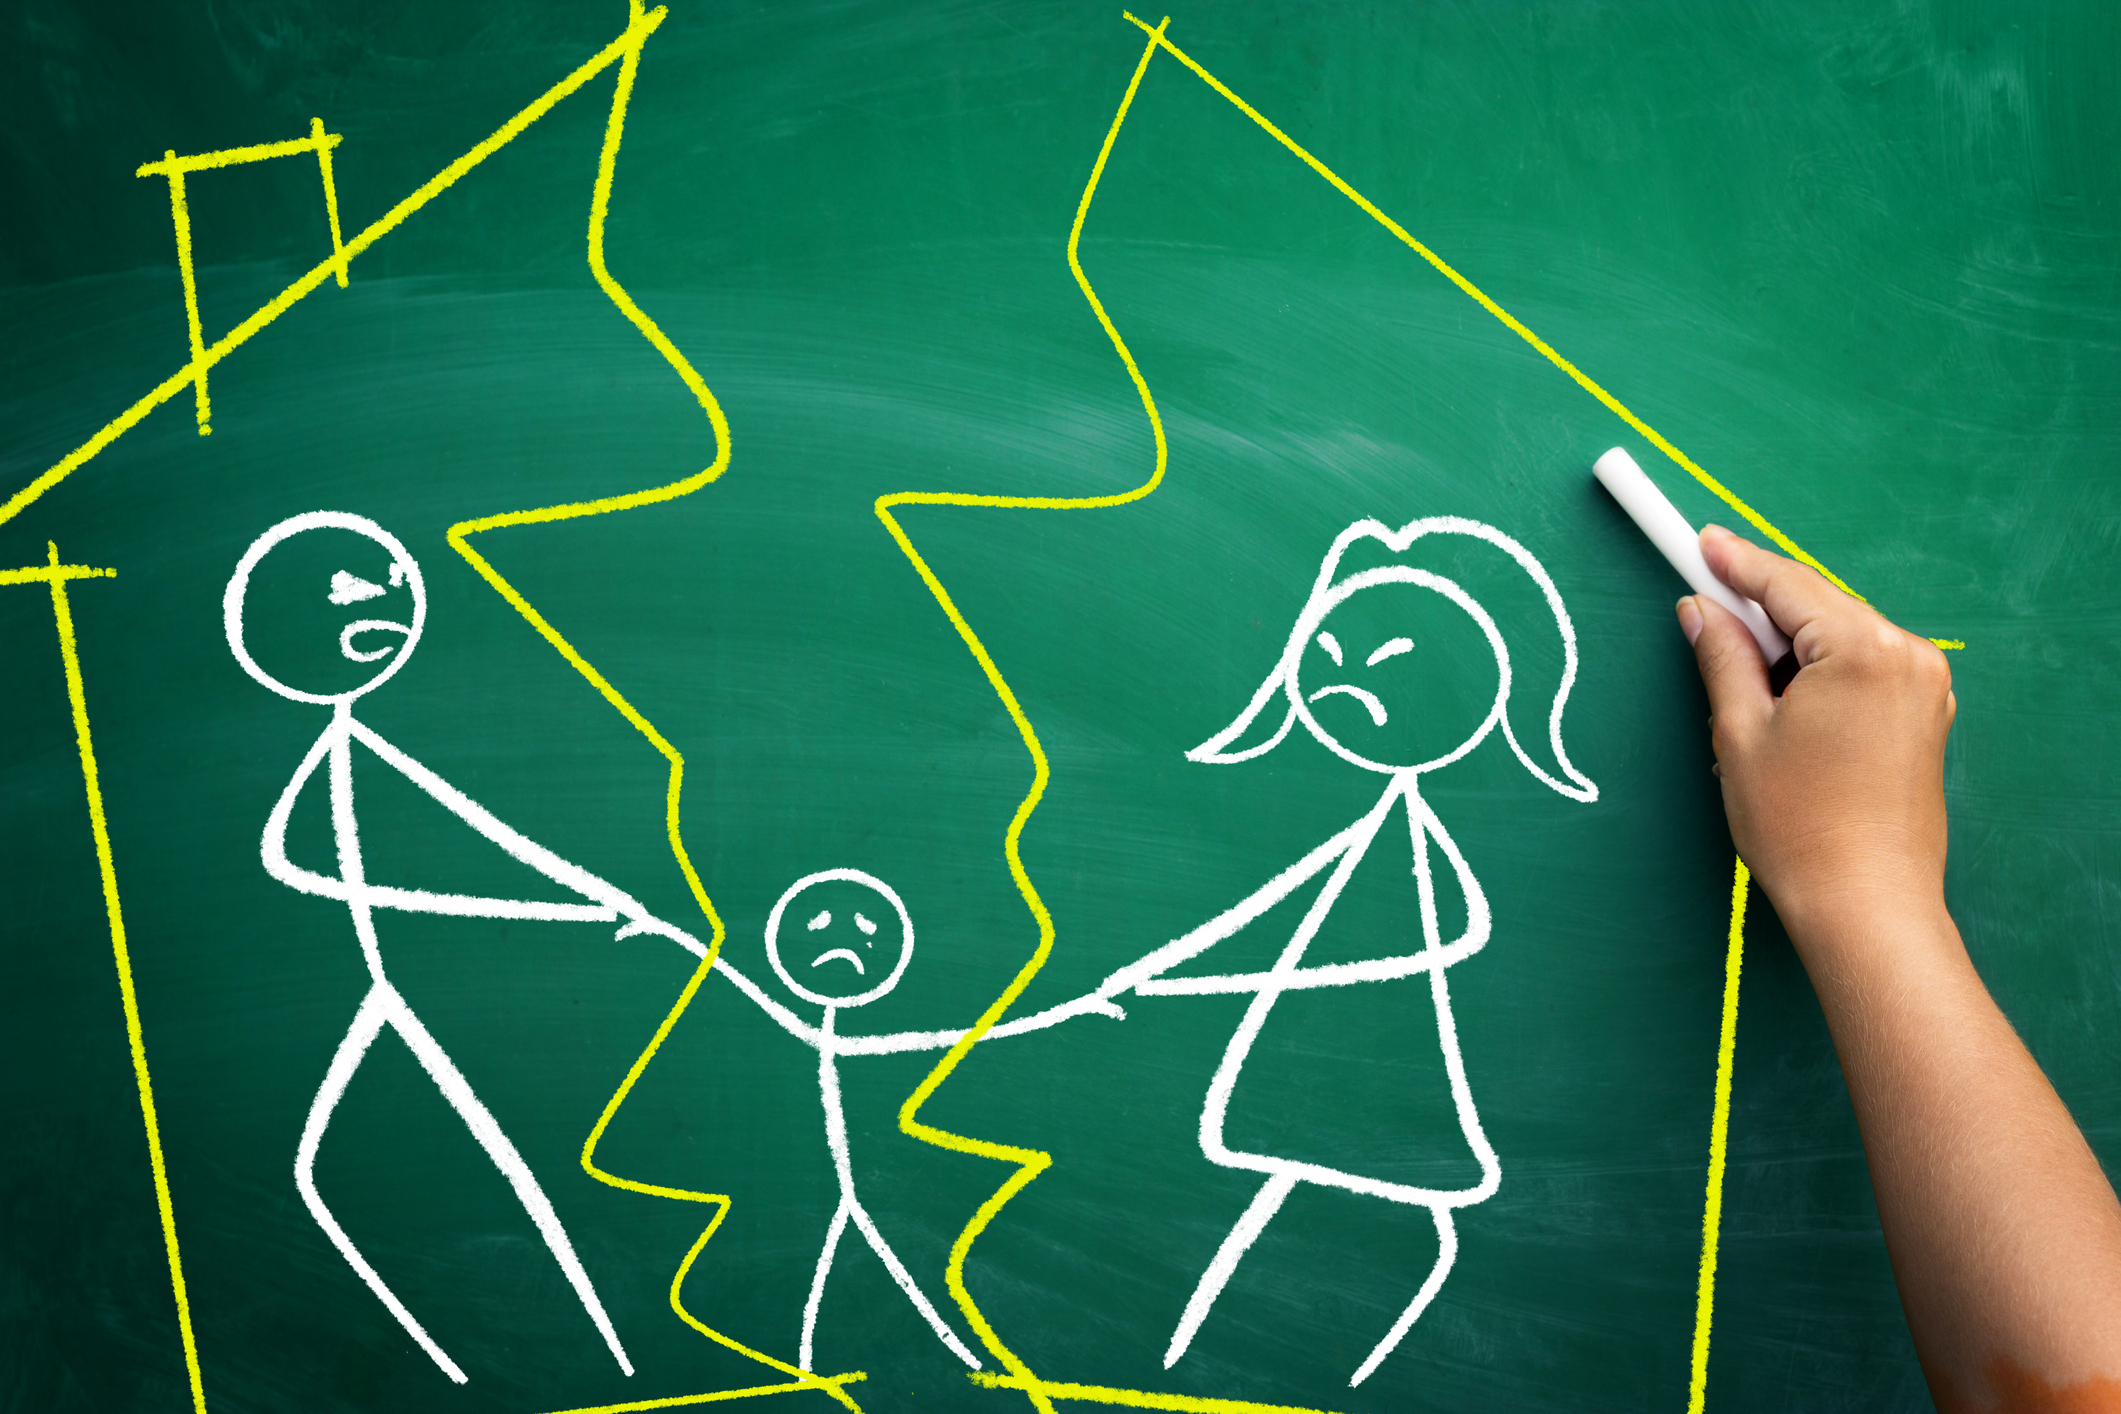 Child Custody - Children are the most important part of a divorce. Divorcing couples have to make decisions about where the child(ren) will live after the parties separate, where they will attend school, who will be responsible for school drop off/pick up, who will make decisions about their education, health, religious upbringing, etc. We help you decide on an appropriate timeshare (parenting time) to meet your child's needs for frequent and continuing contact with both parents. Click here to learn more about child custody.Whether you litigate or mediate your custody case,we can help you come to an agreement.Call us at 562-426-6522or go to